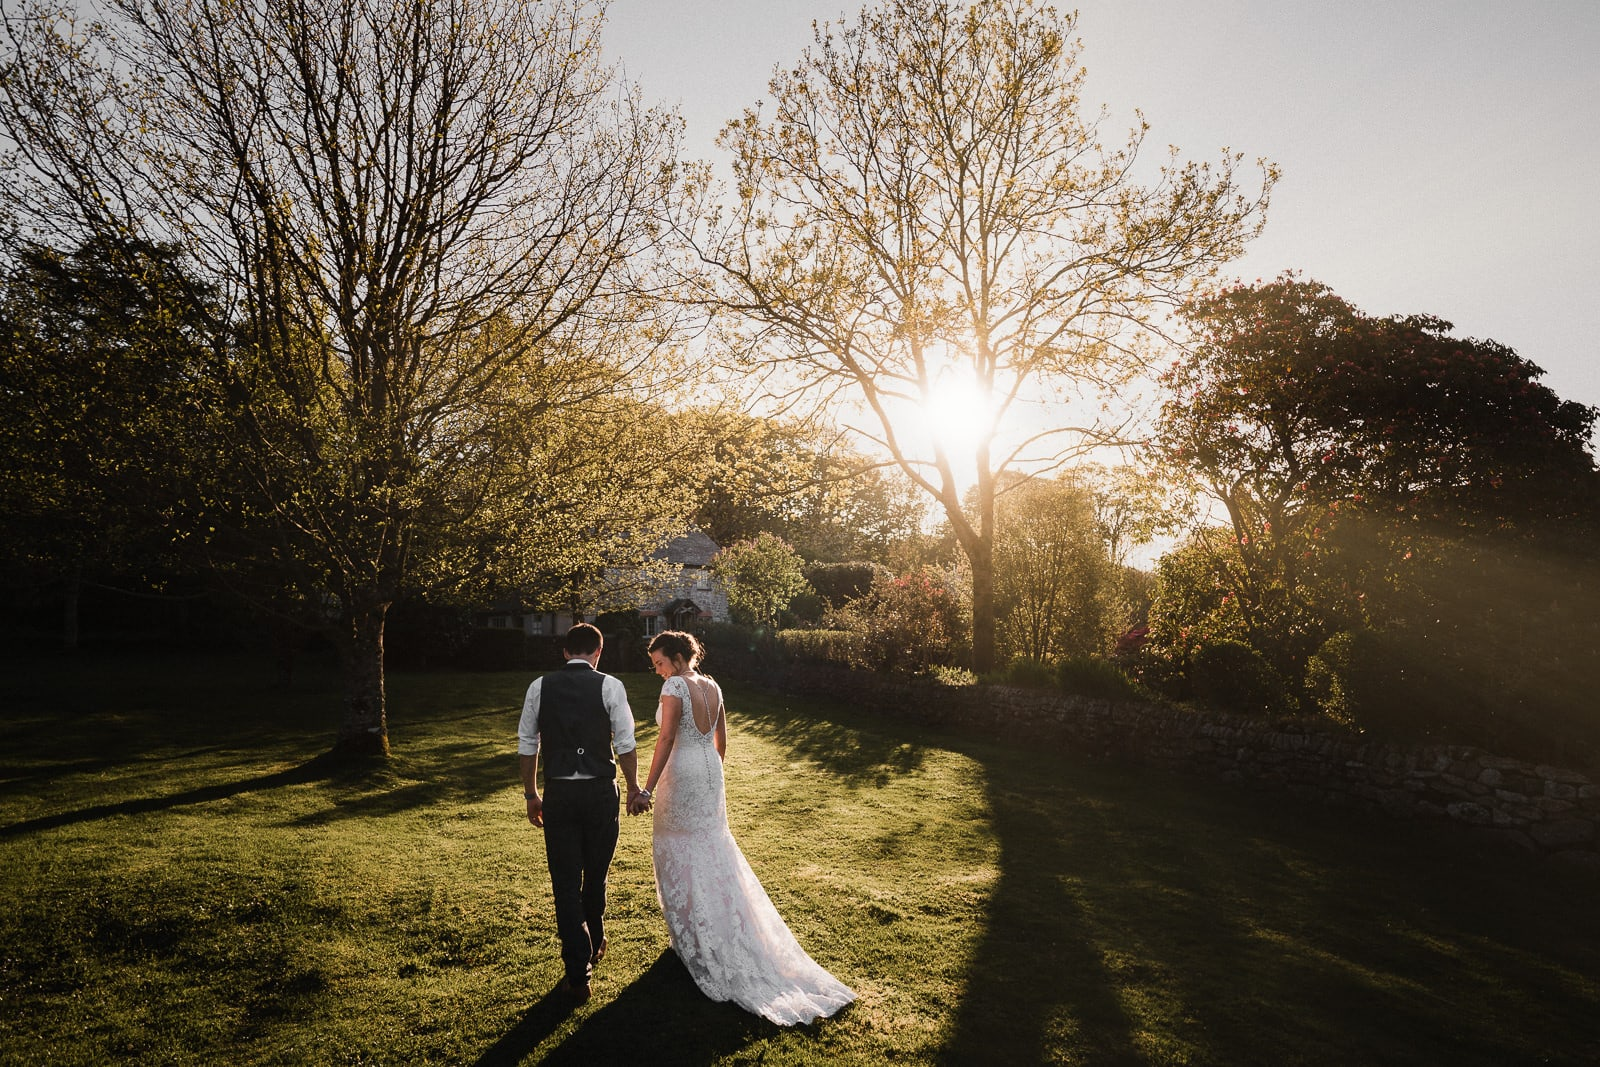 Bride and groom strolling hand in hand through the grounds of Cosawes Barton on their wedding day, while the sun sets through the trees